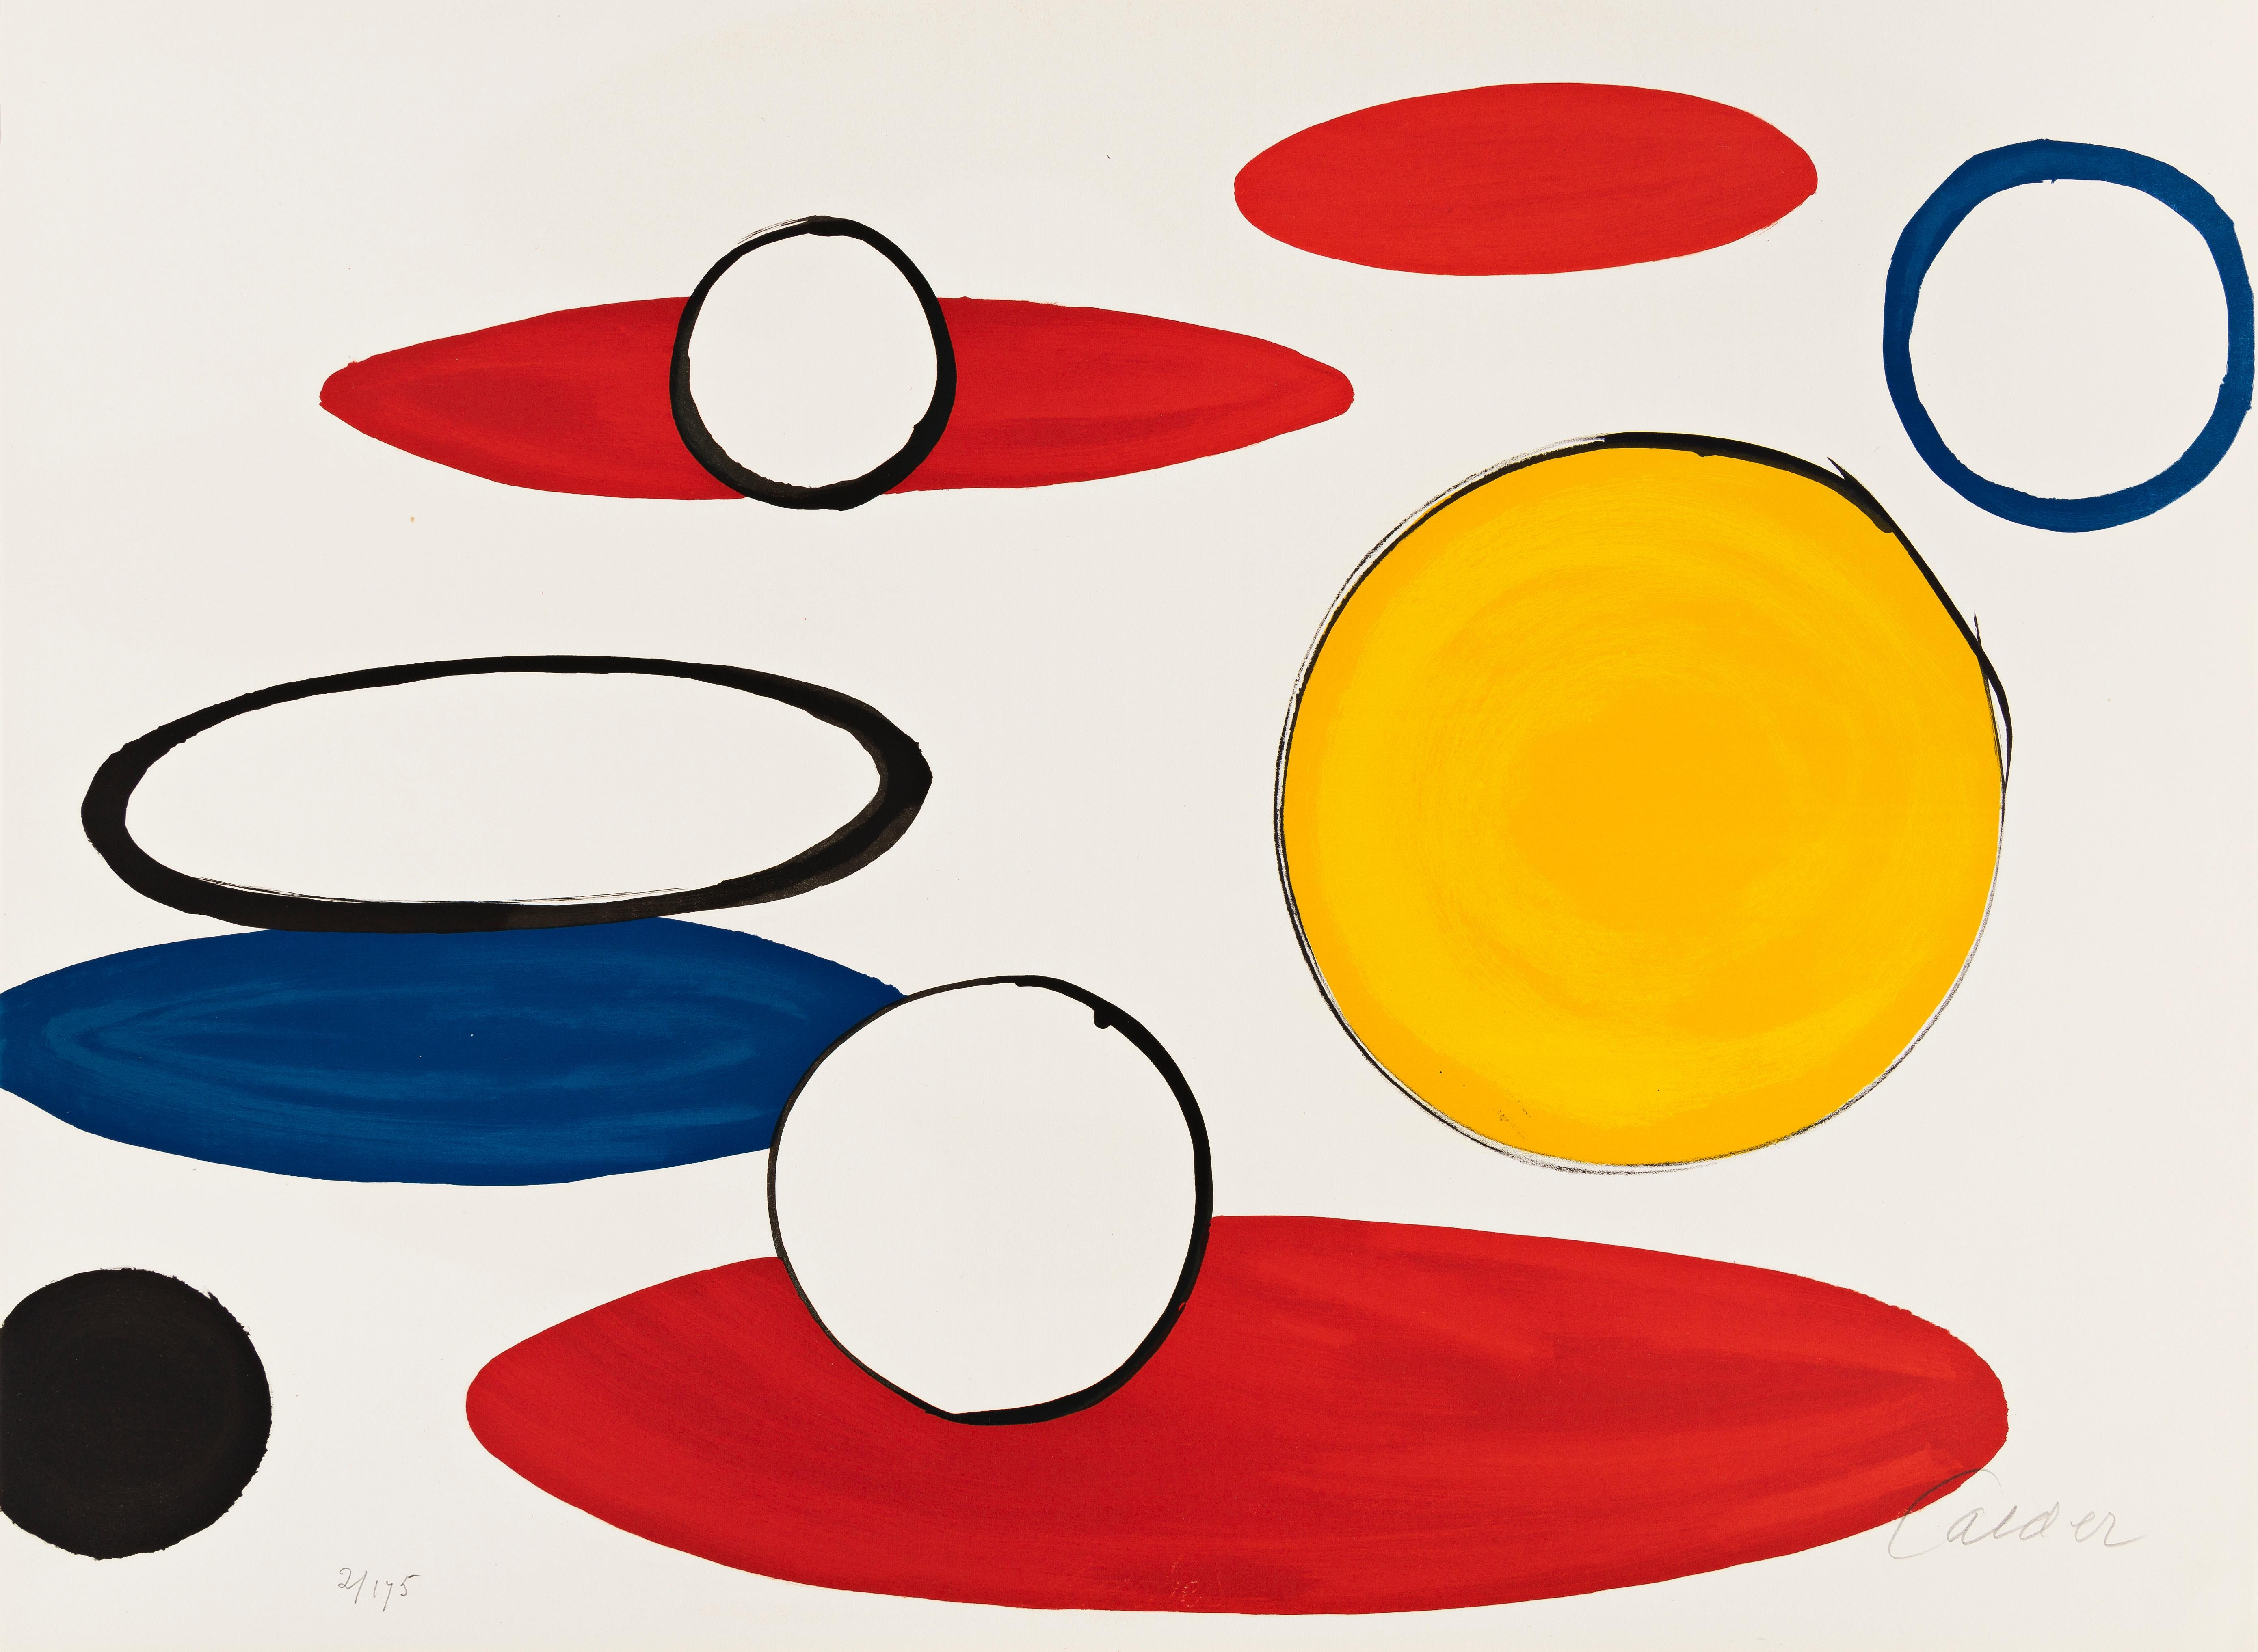 White Circles and Ellipses